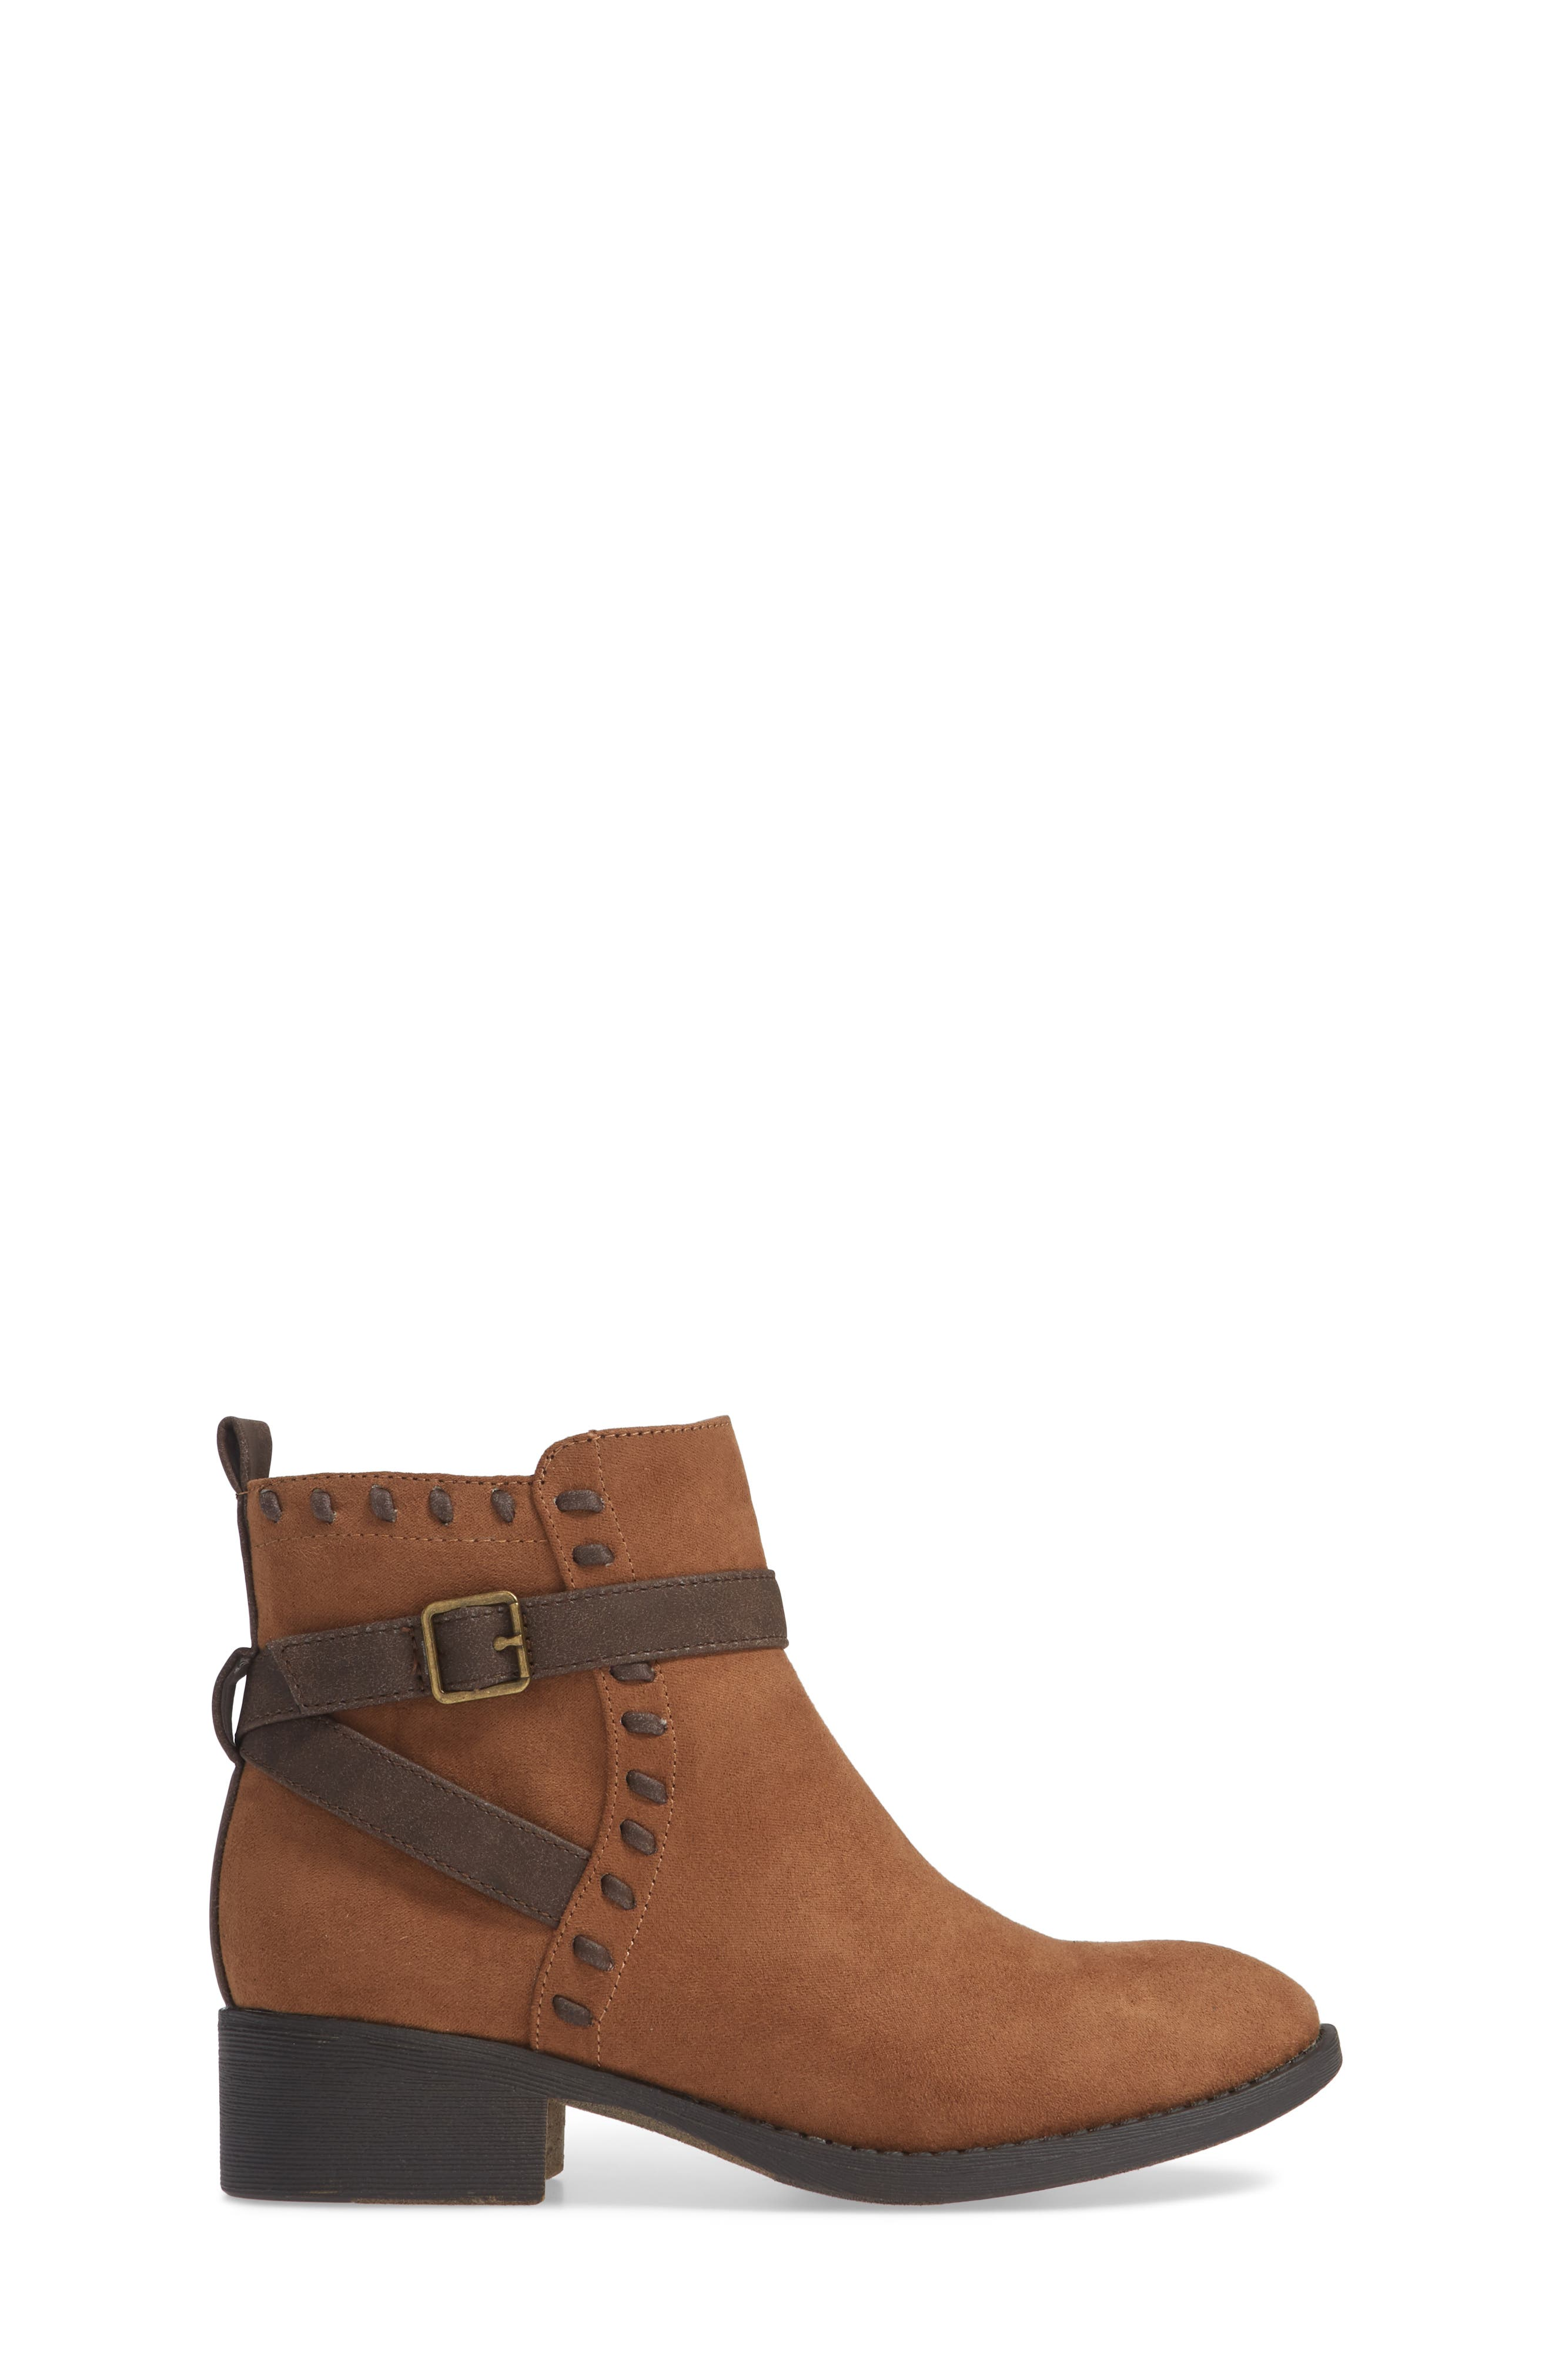 REACTION KENNETH COLE,                             Downtown Bootie,                             Alternate thumbnail 3, color,                             204